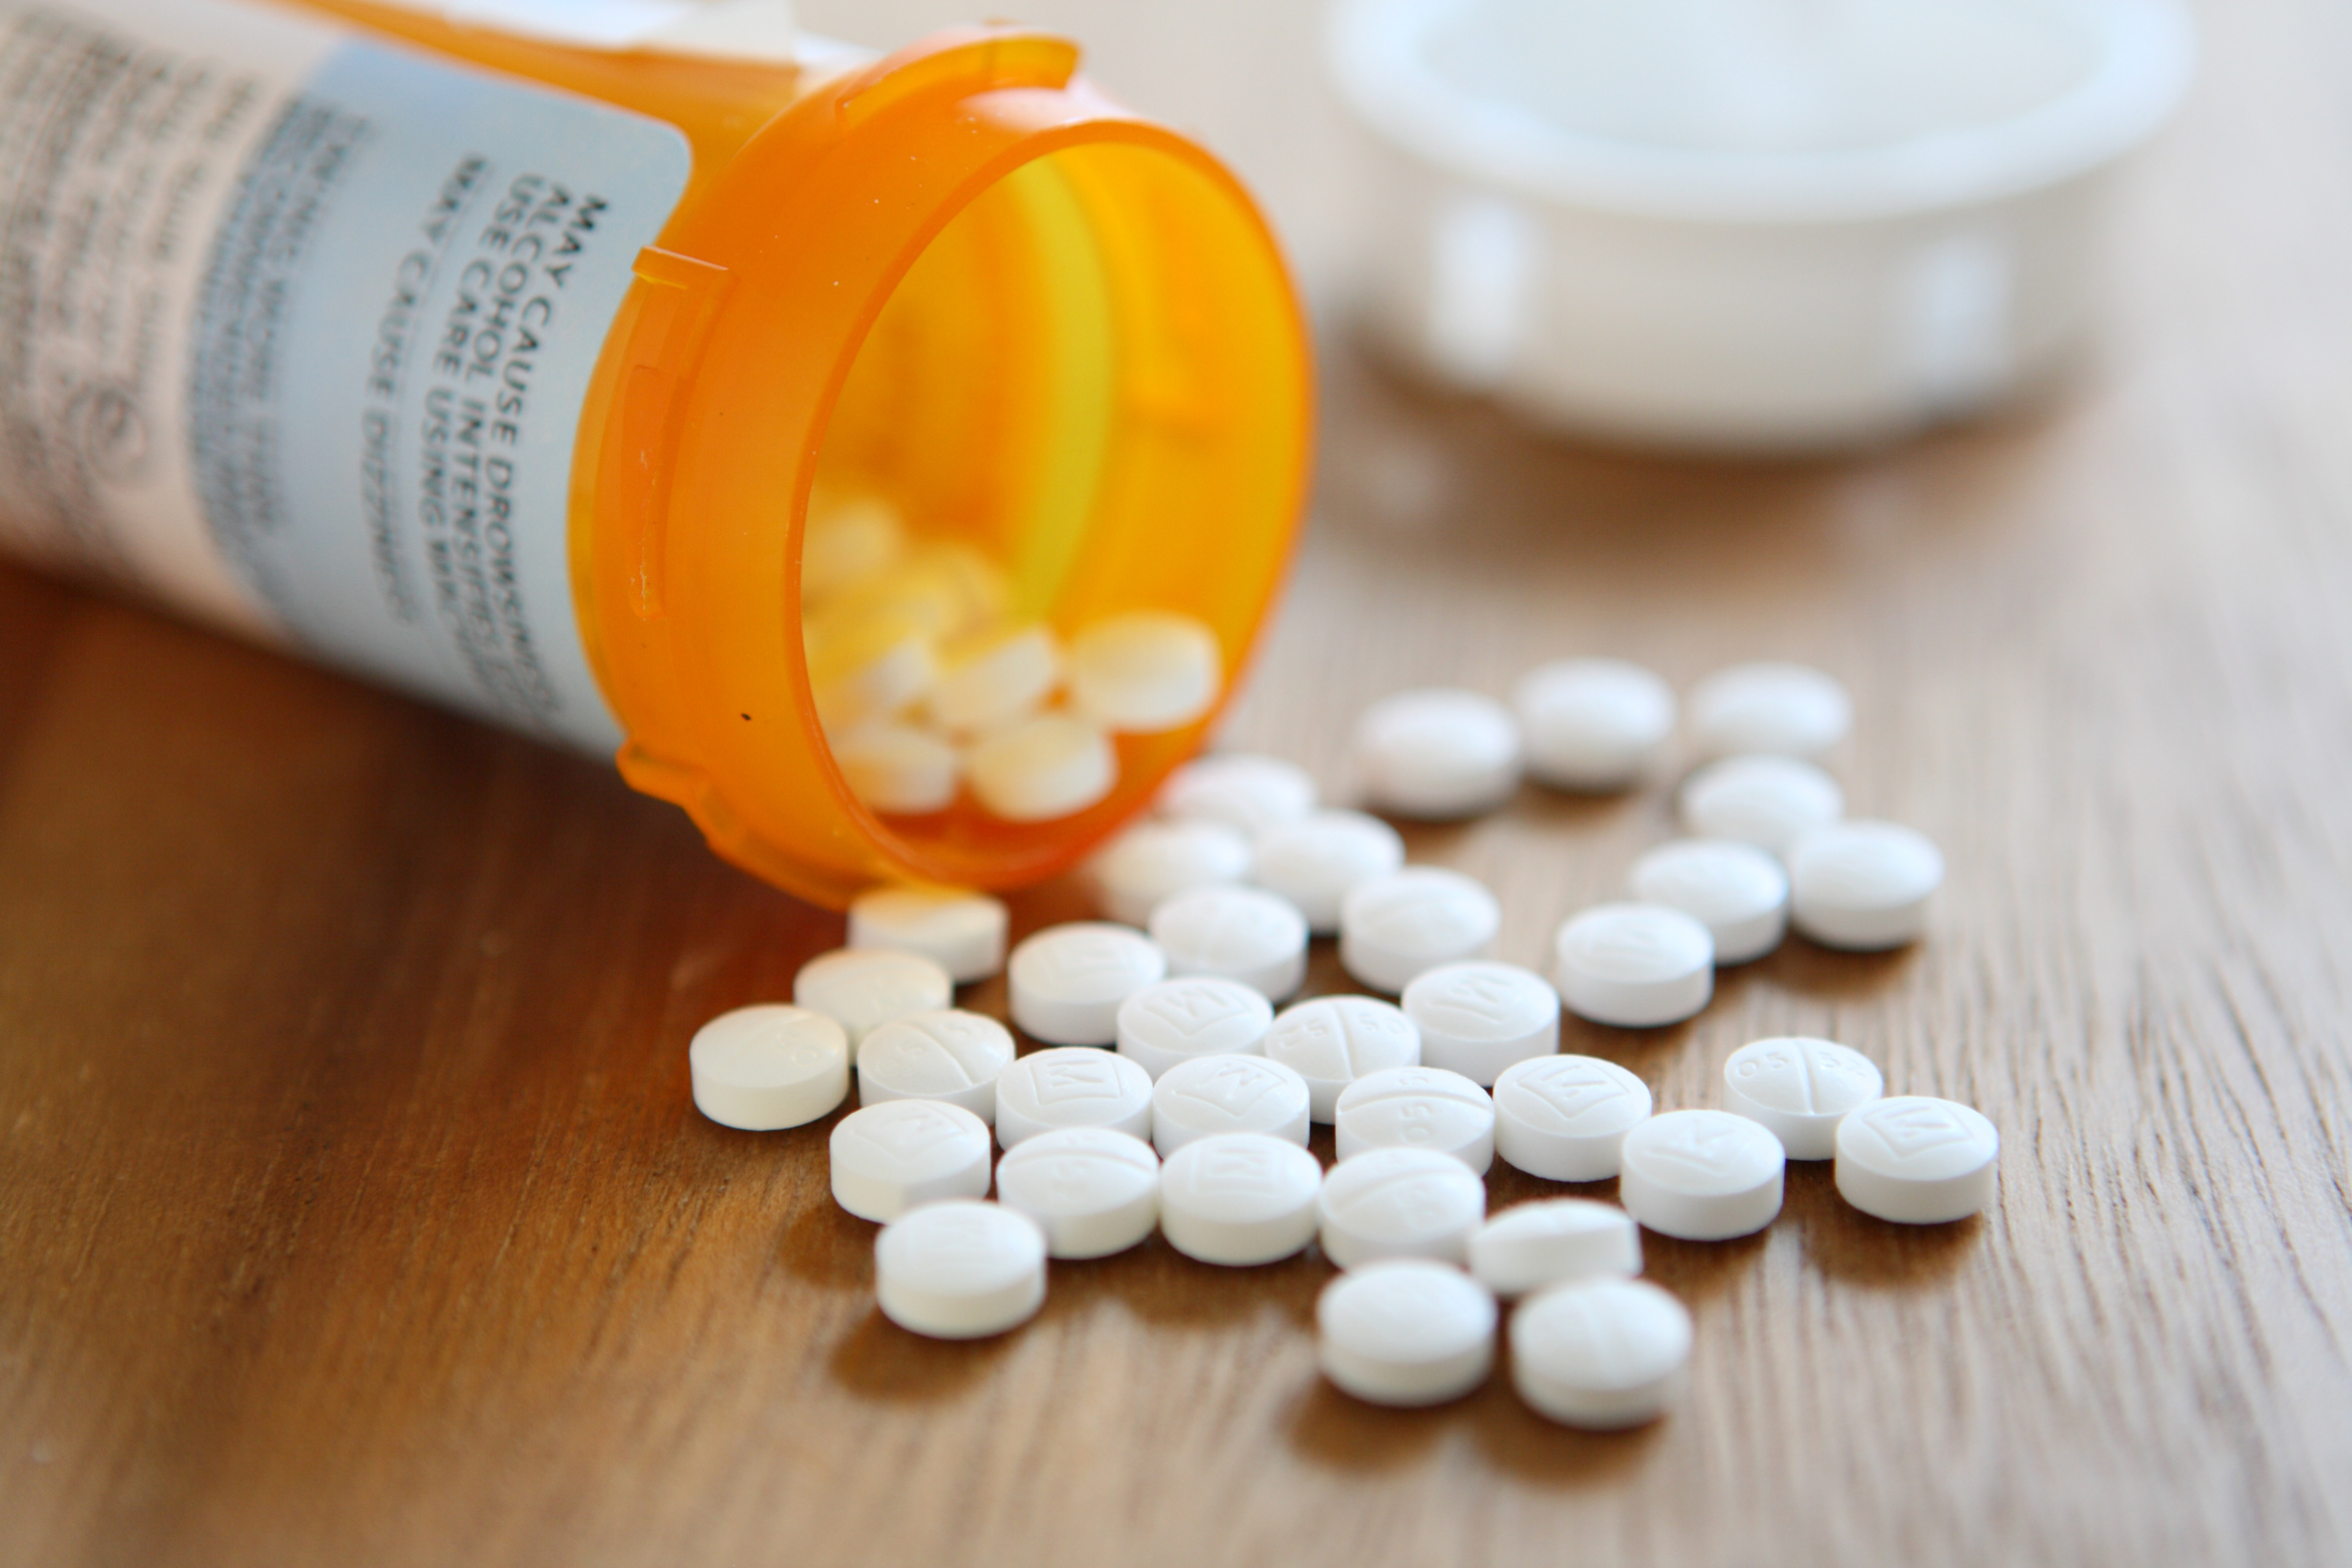 Strict limits on opioid prescribing risk the 'inhumane treatment' of pain patients